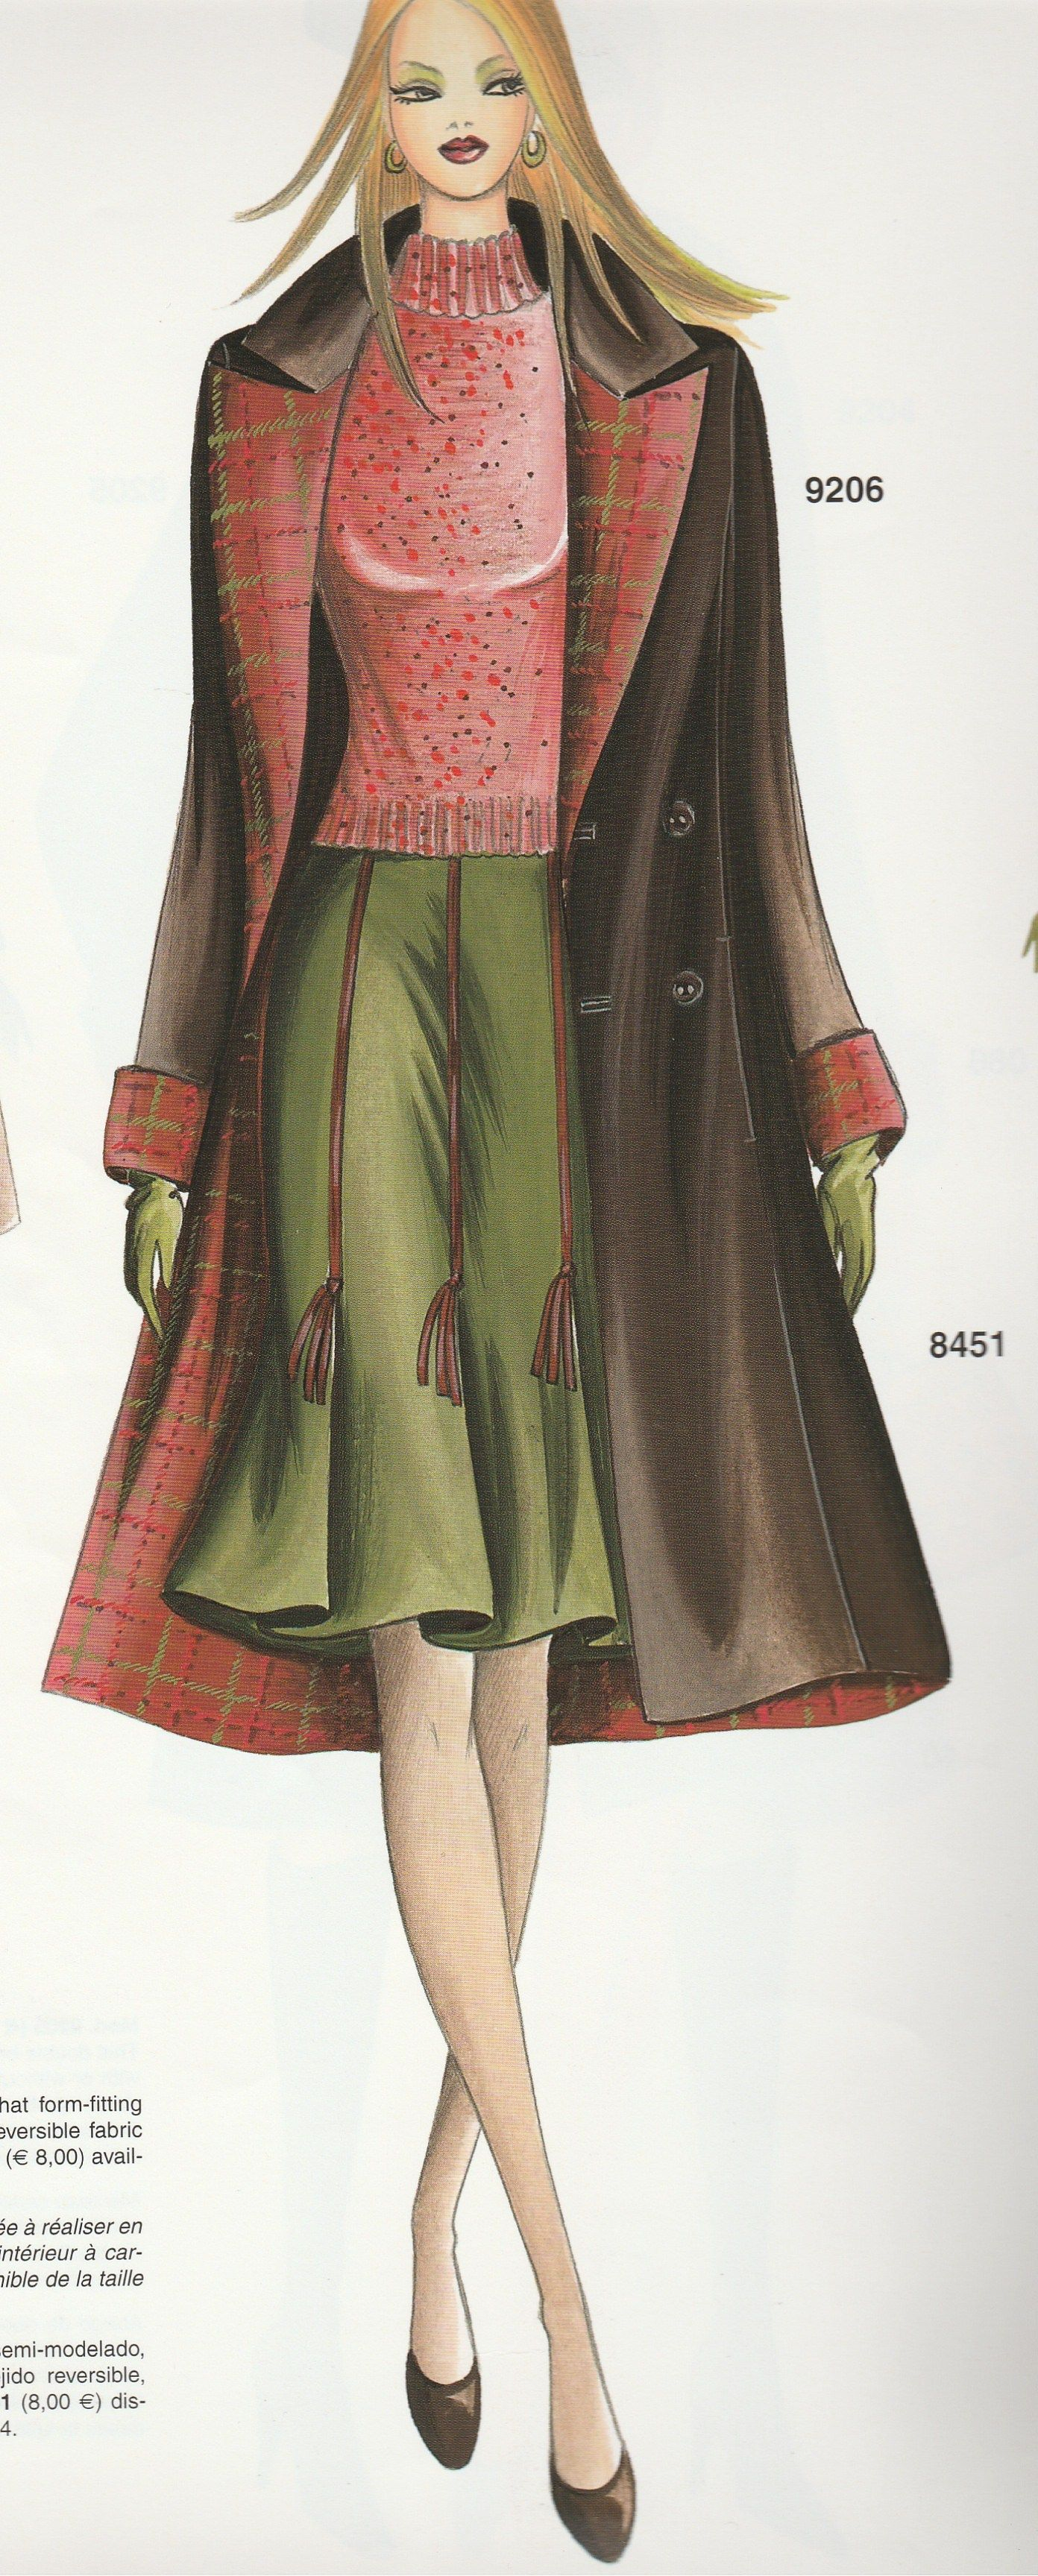 Marfy coat and skirt | MARFY STYLE | Pinterest